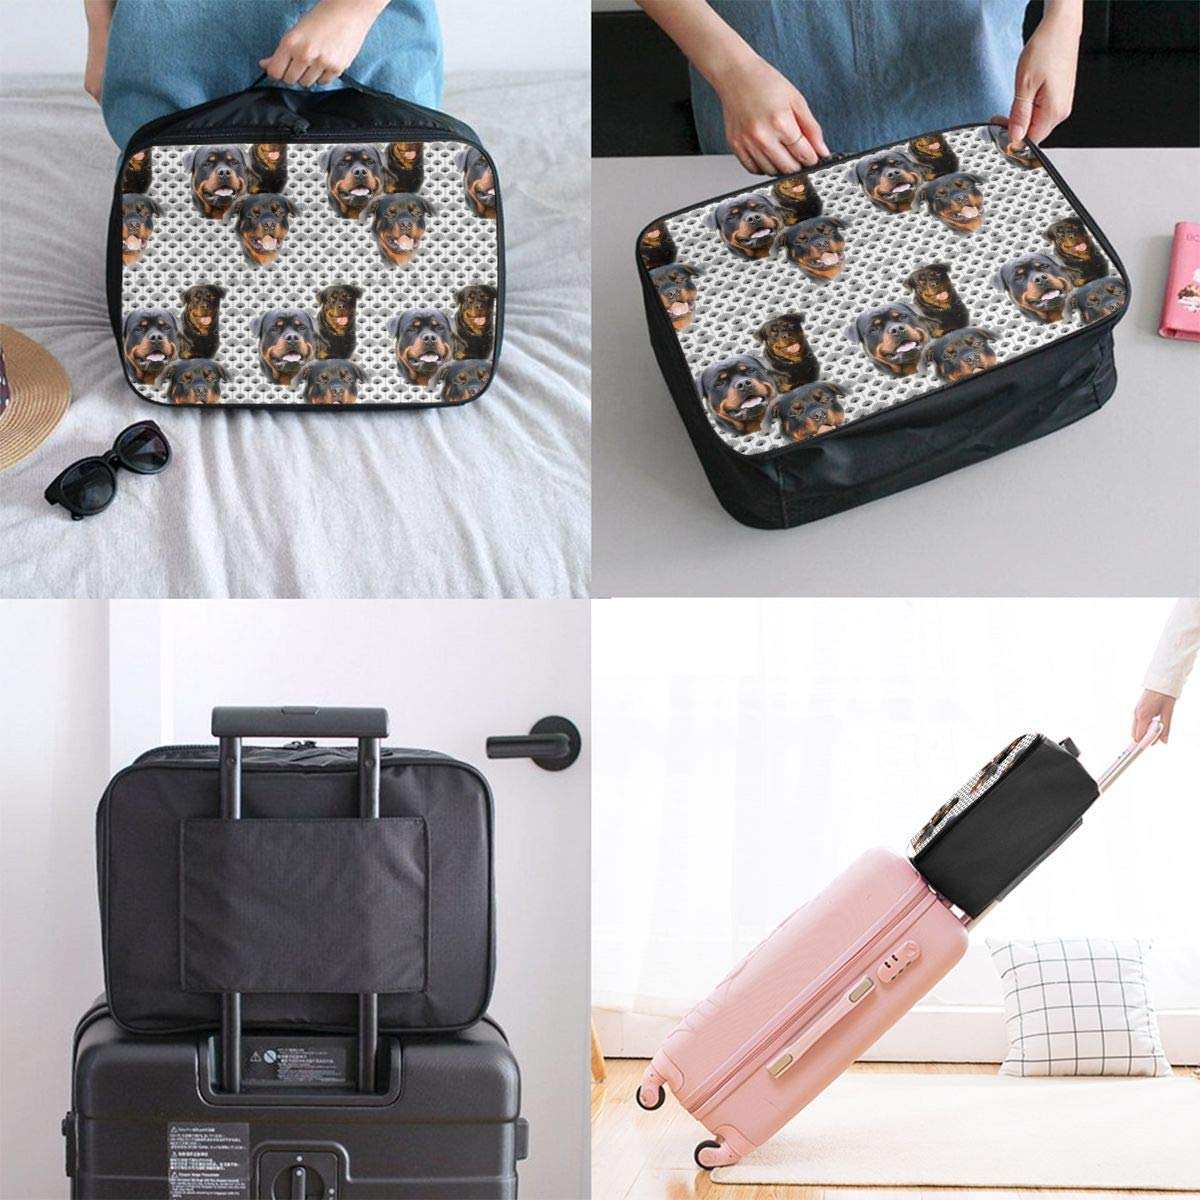 JTRVW Luggage Bags for Travel Travel Lightweight Waterproof Foldable Storage Carry Luggage Duffle Tote Bag Rottweilers And Thistles